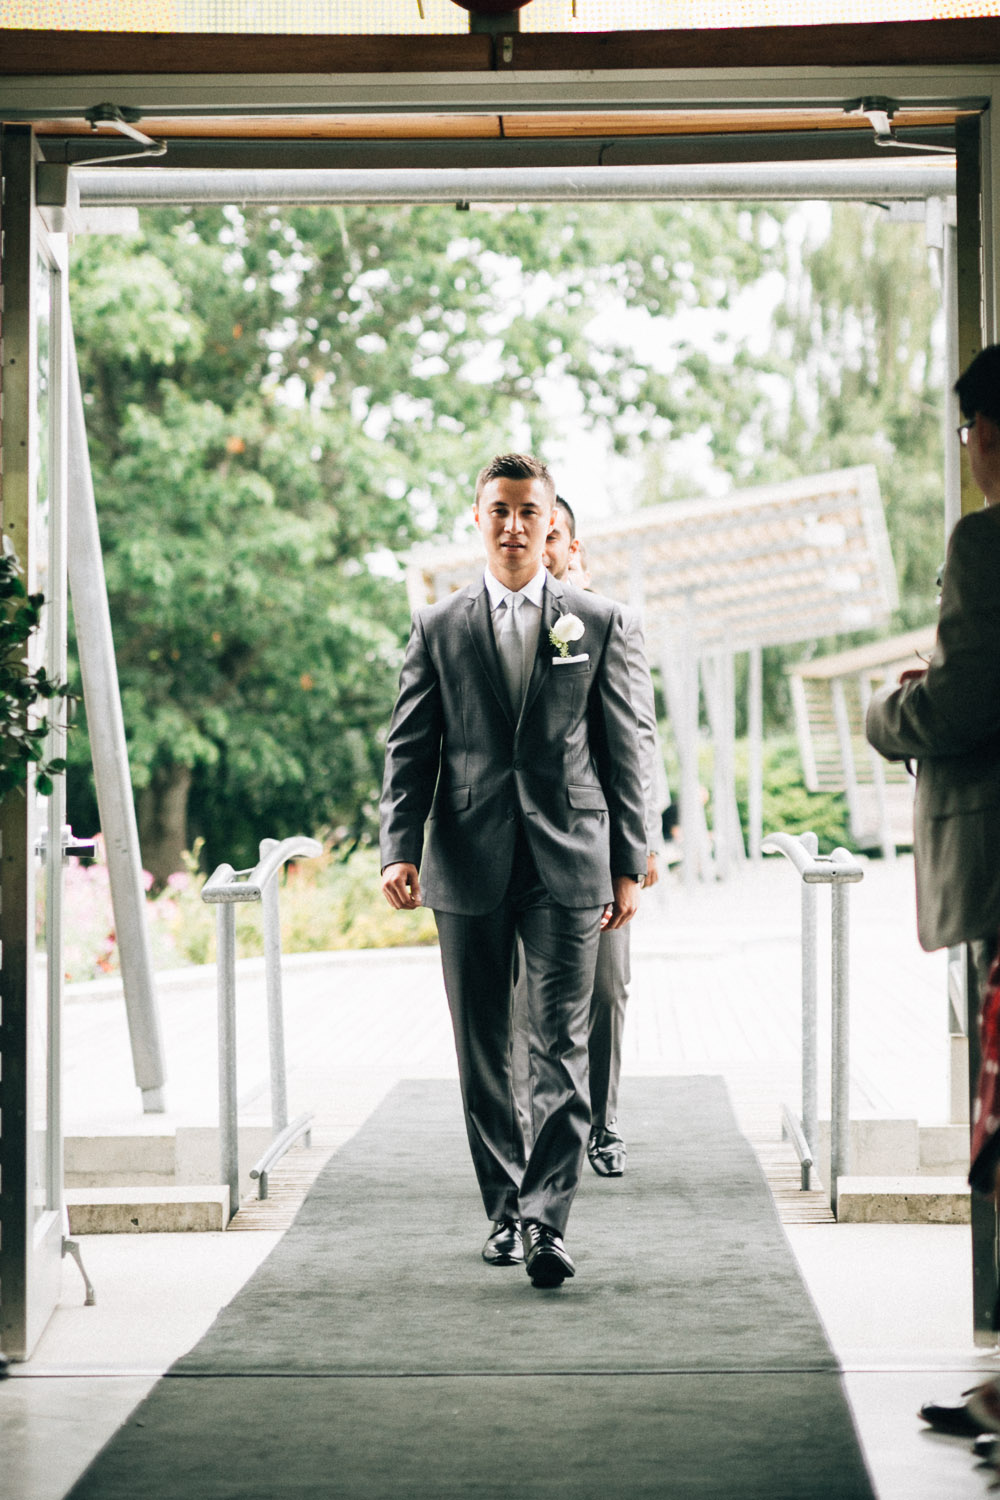 queen elizabeth park vancouver wedding photographers pavilion noyo creative